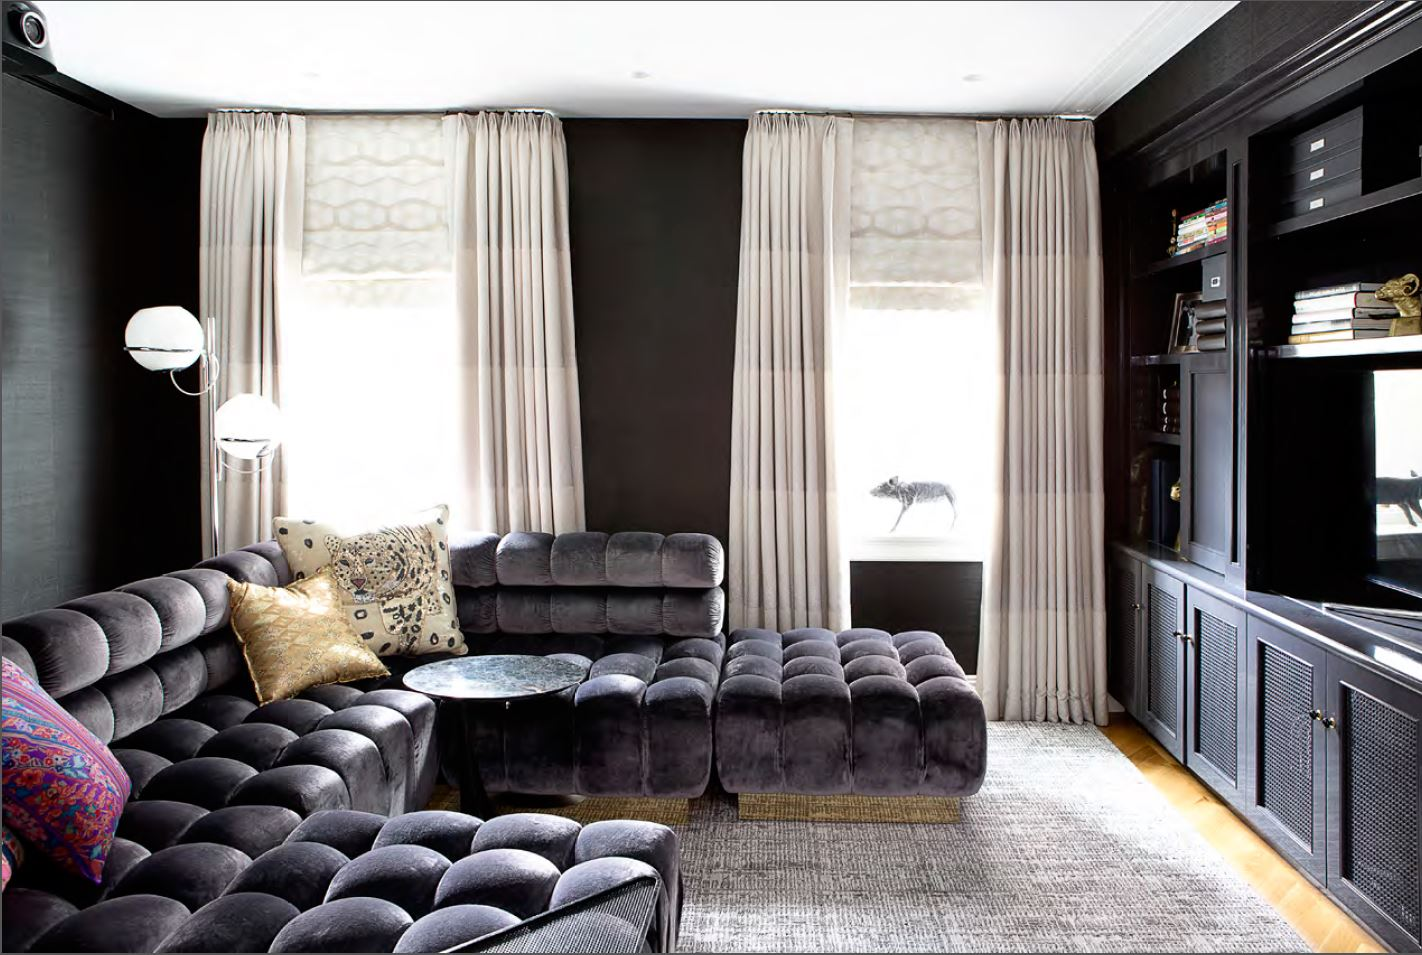 Living Room Ideas for New Year's Eve Luxury Living Room Ideas for New Year's Eve Luxury Living Room Ideas for New Year   s Eve6